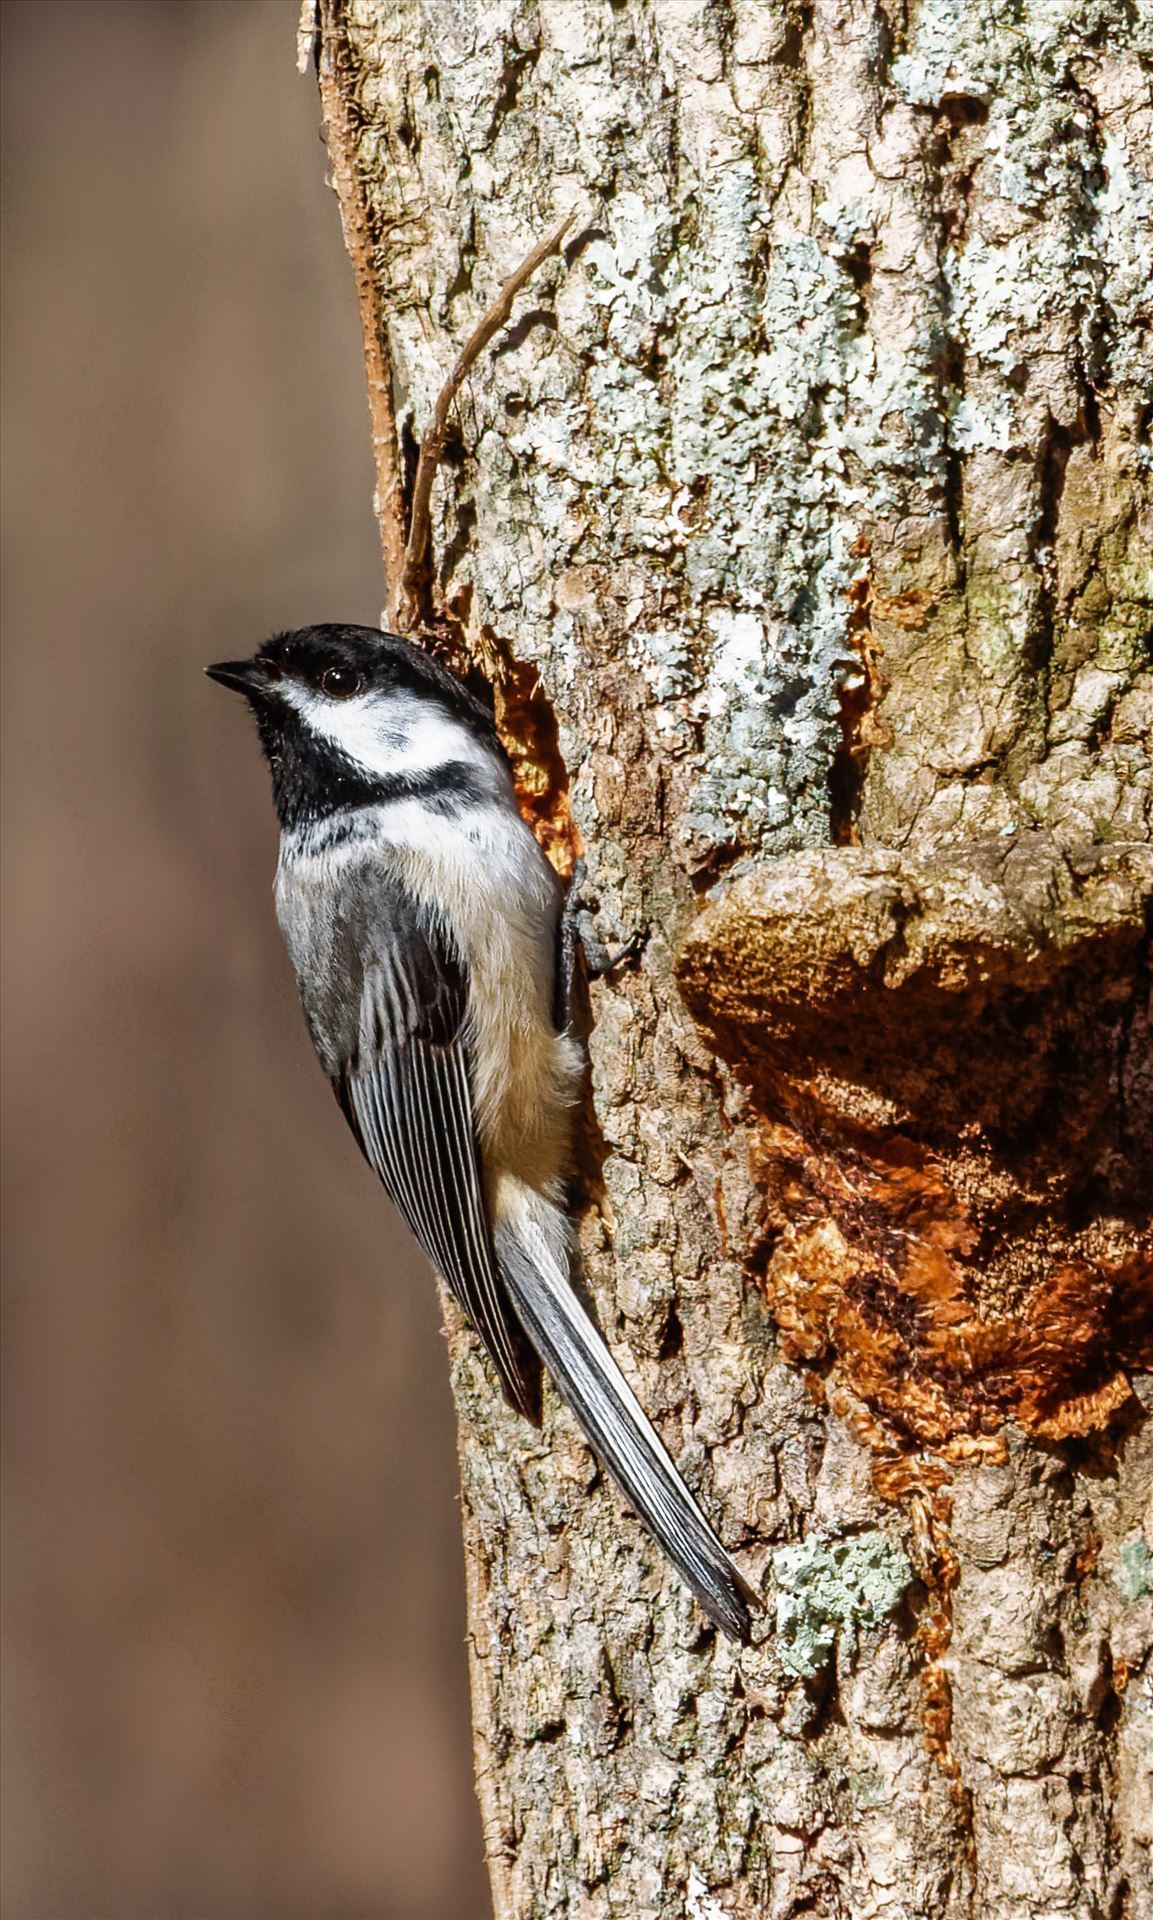 Chickadee - Black-Capped Chickadee checking out a Woodpecker Hole by Buckmaster